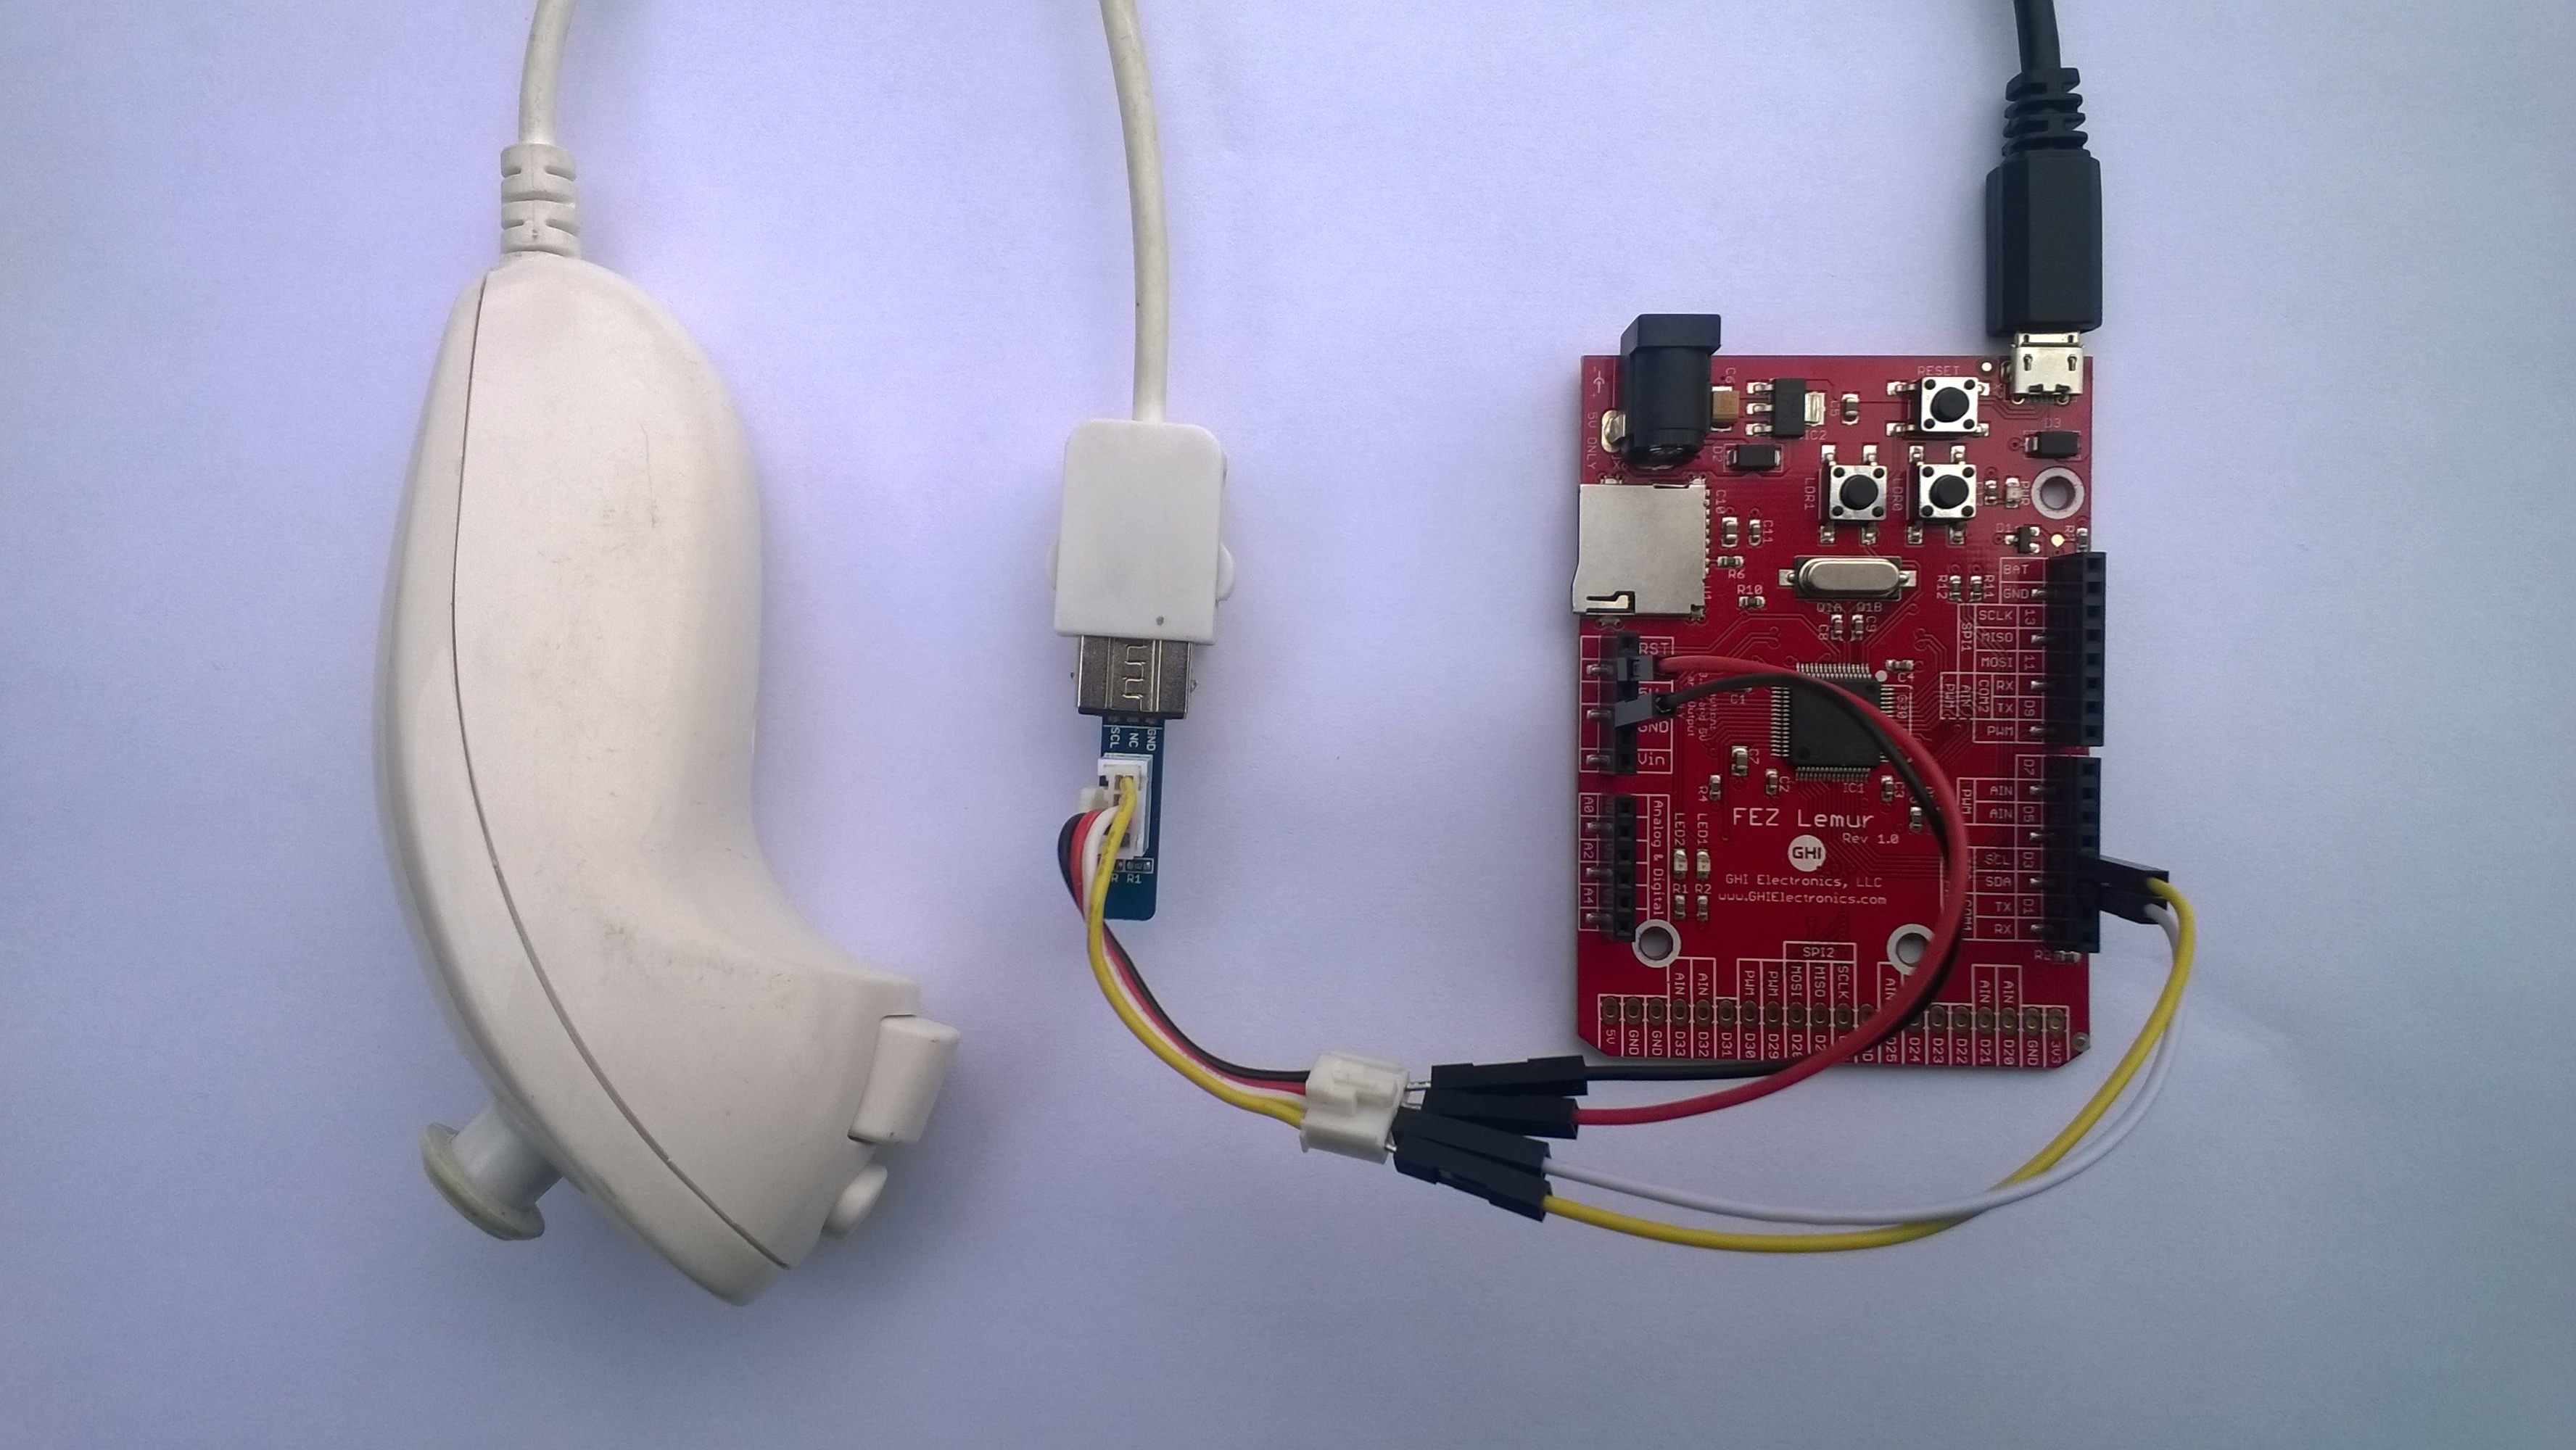 FEZ Lemur and Nunchuck connected with jumper wires and seeedstudio adaptor